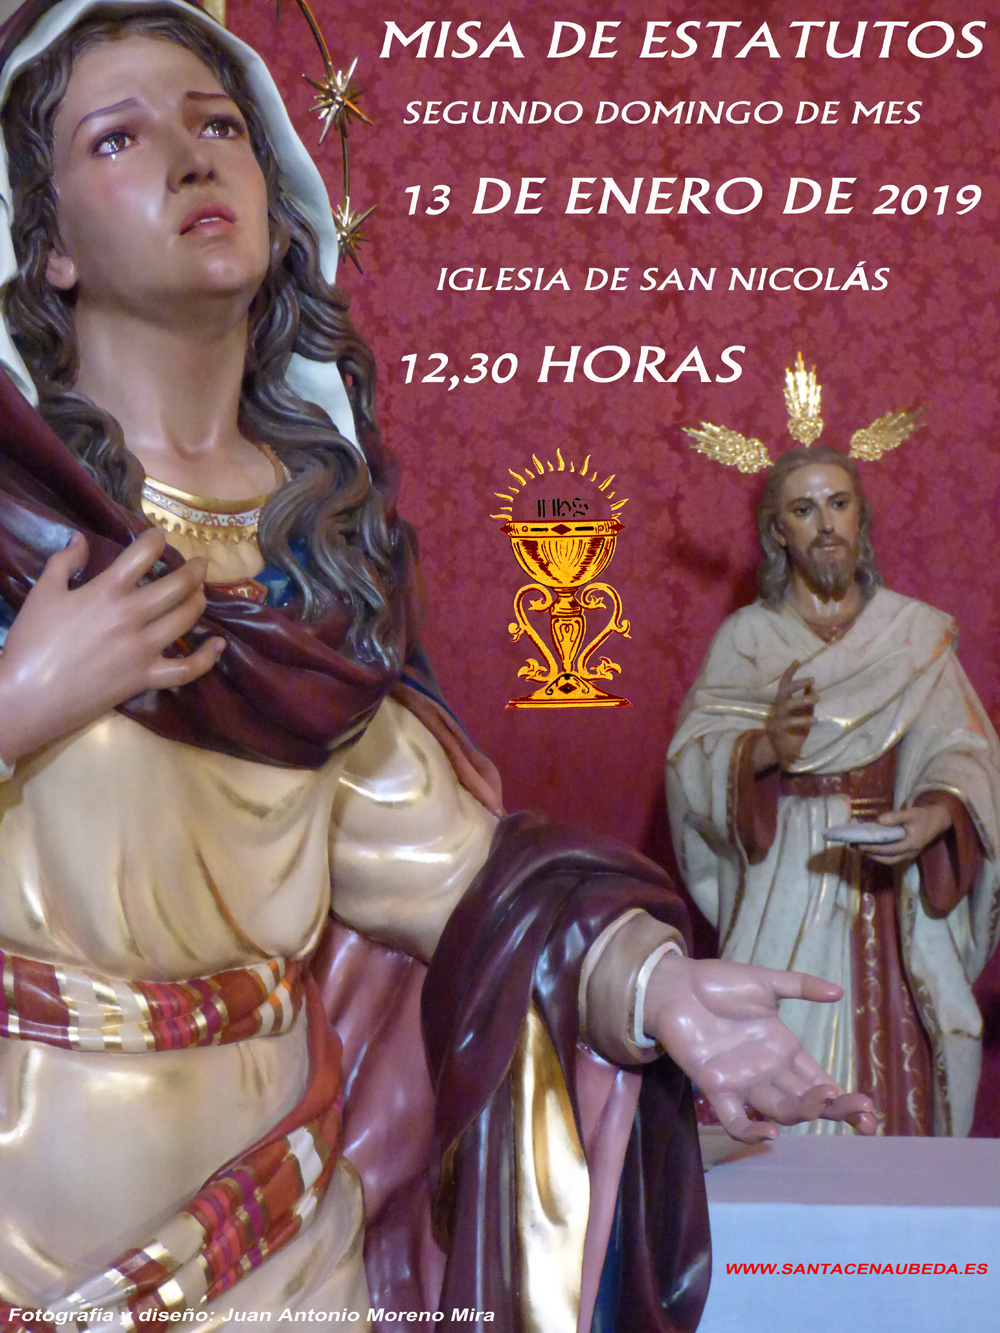 misa estatutos enero 2019 web